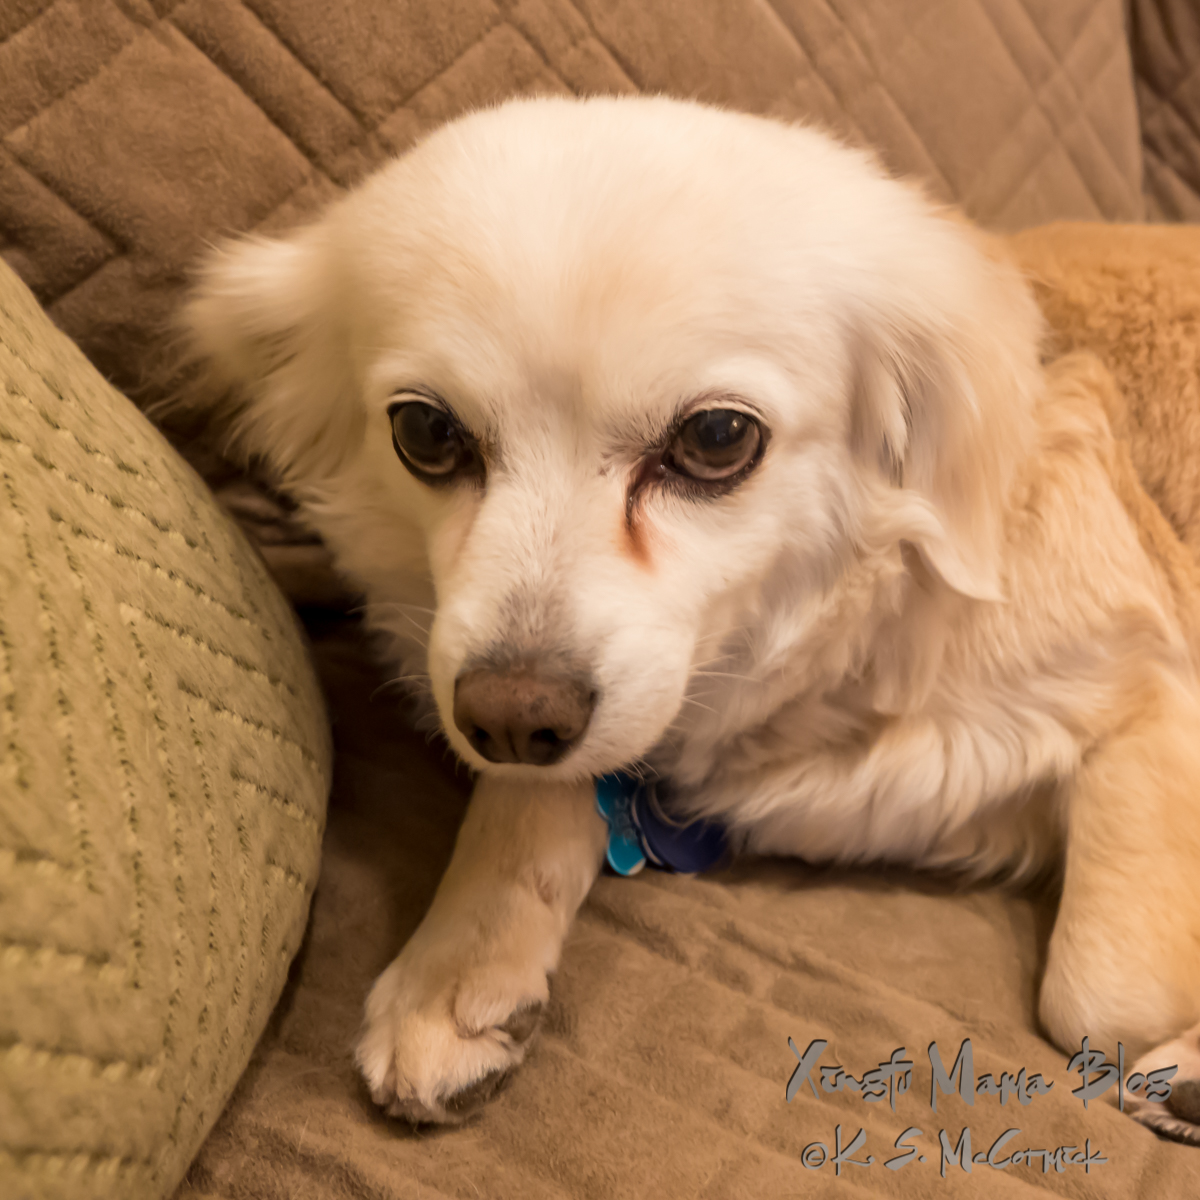 Cream colored chihuahua-pomeranian mix looking reproachful.